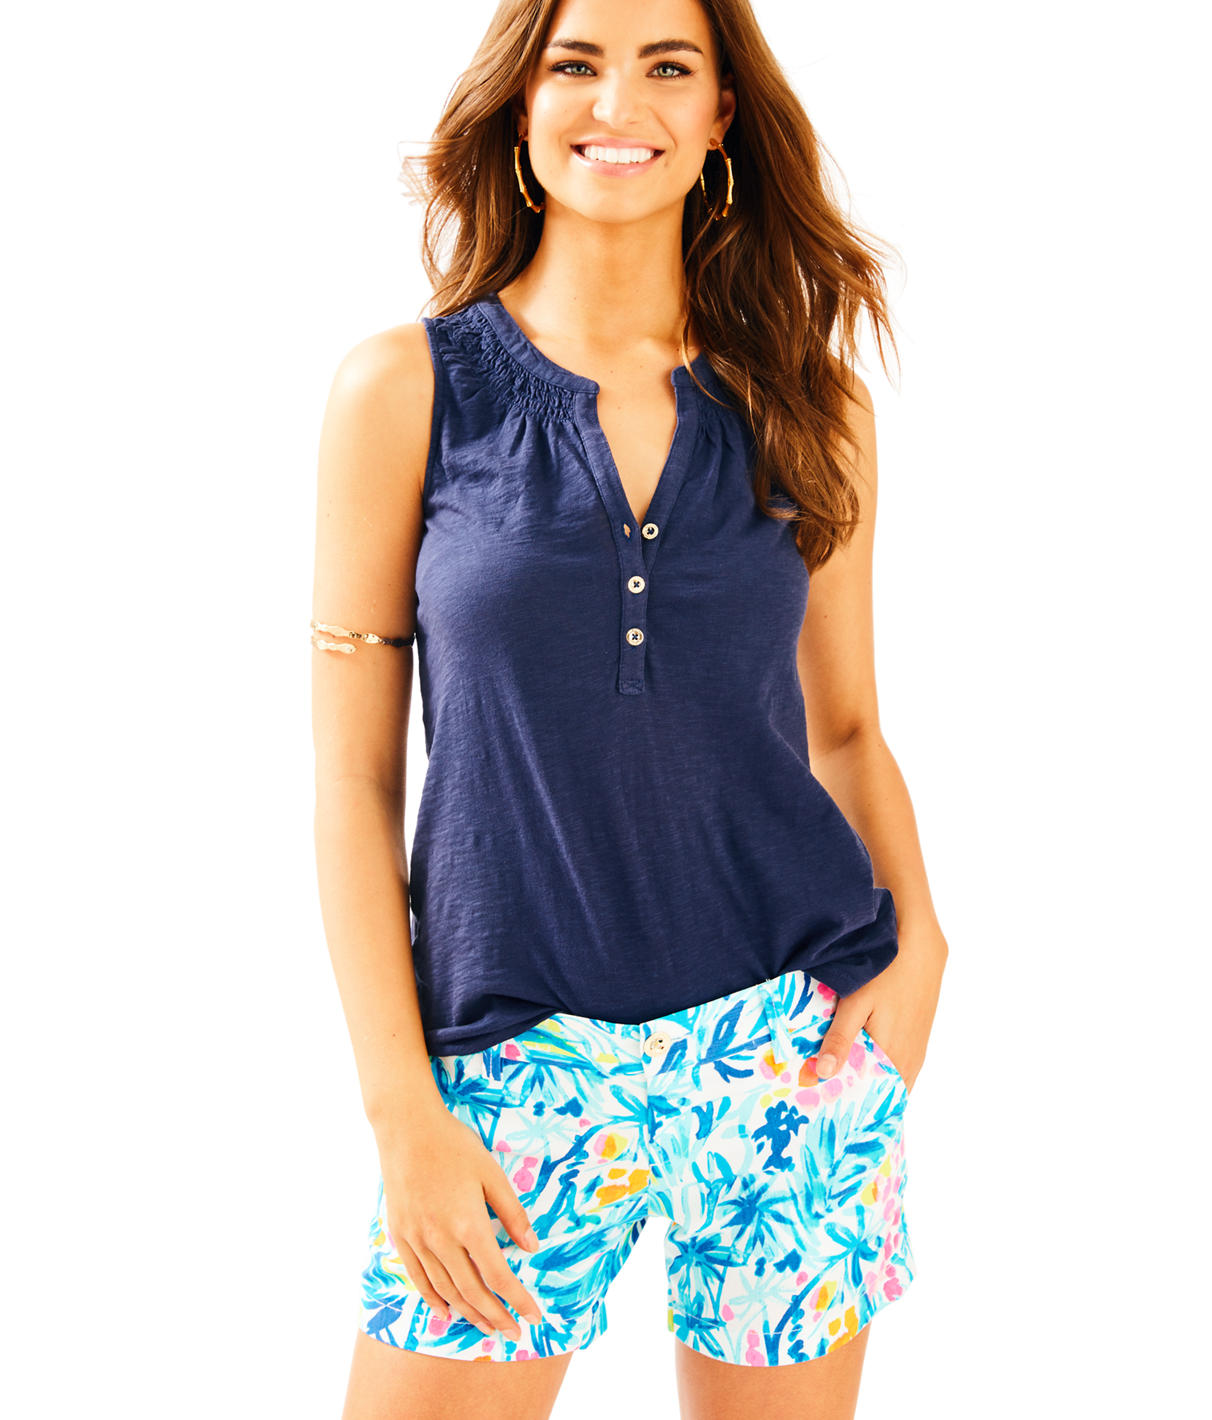 Lilly Pulitzer Lilly Pulitzer Womens 5